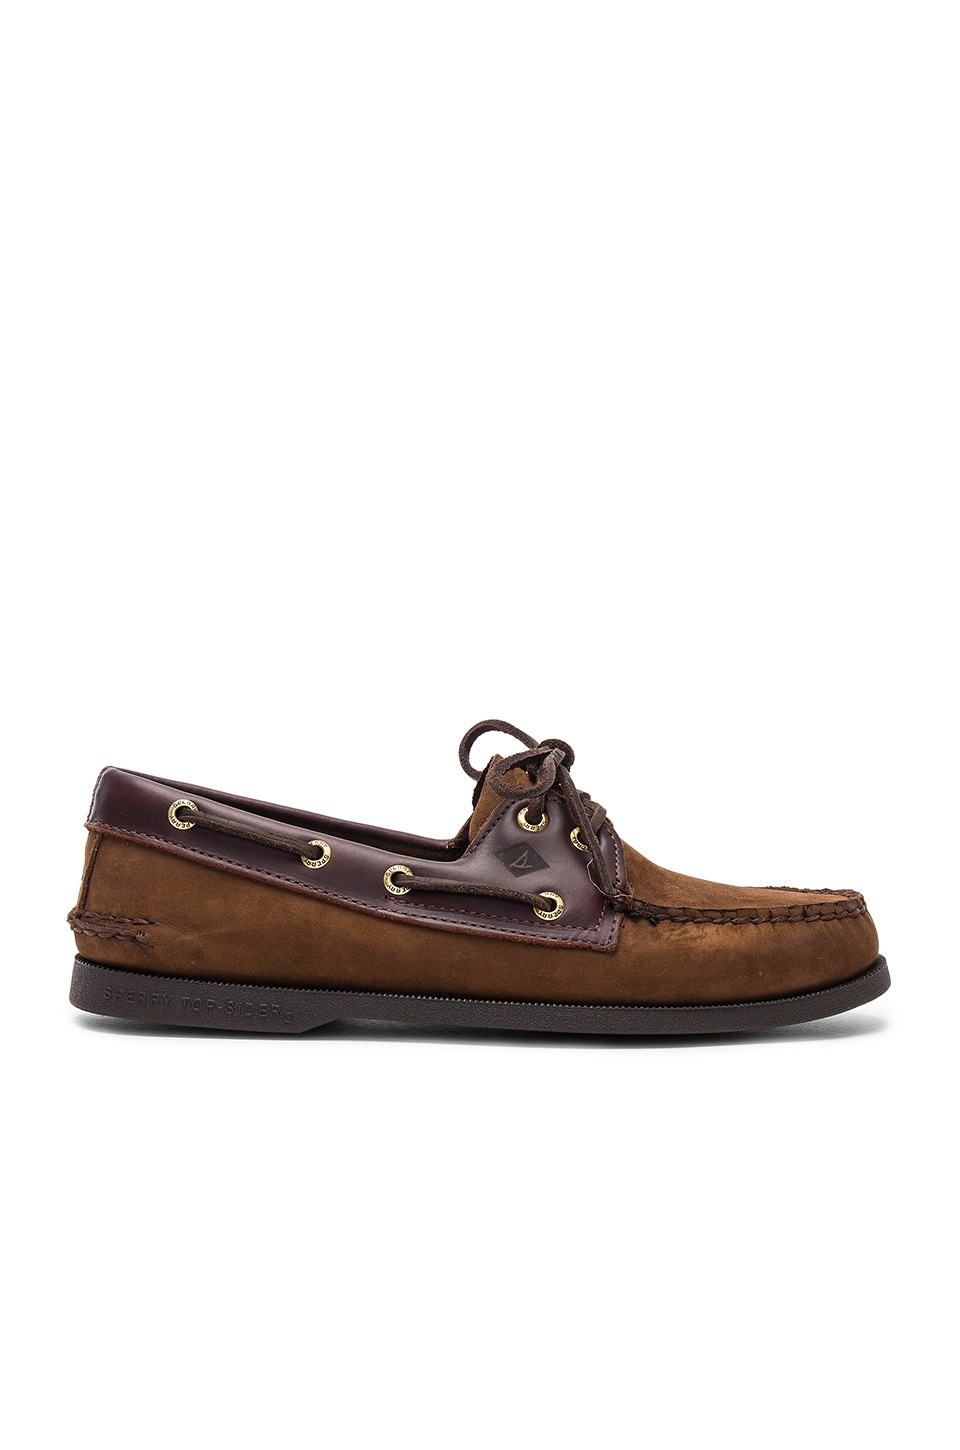 A/O 2-Eye by Sperry Top-Sider